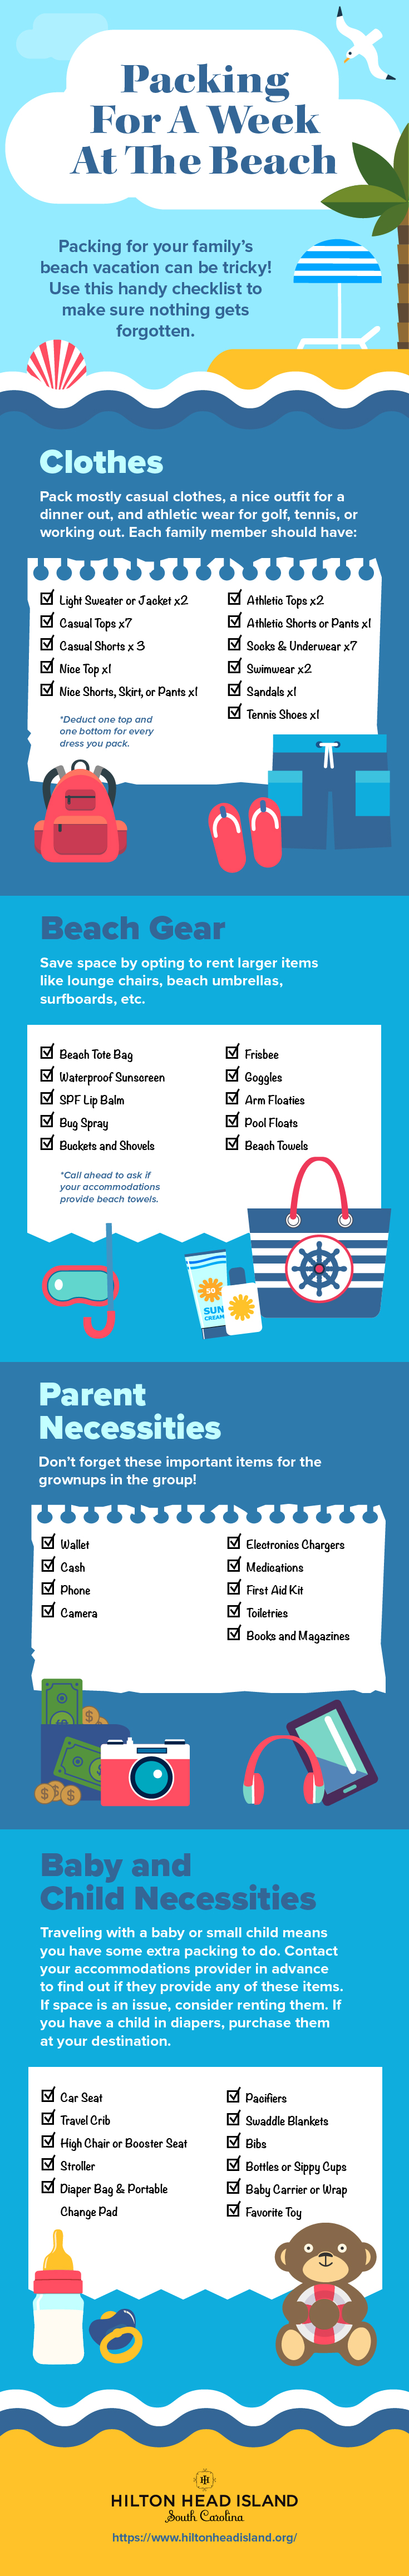 Infographic: How to Pack for Your Family Beach Vacation